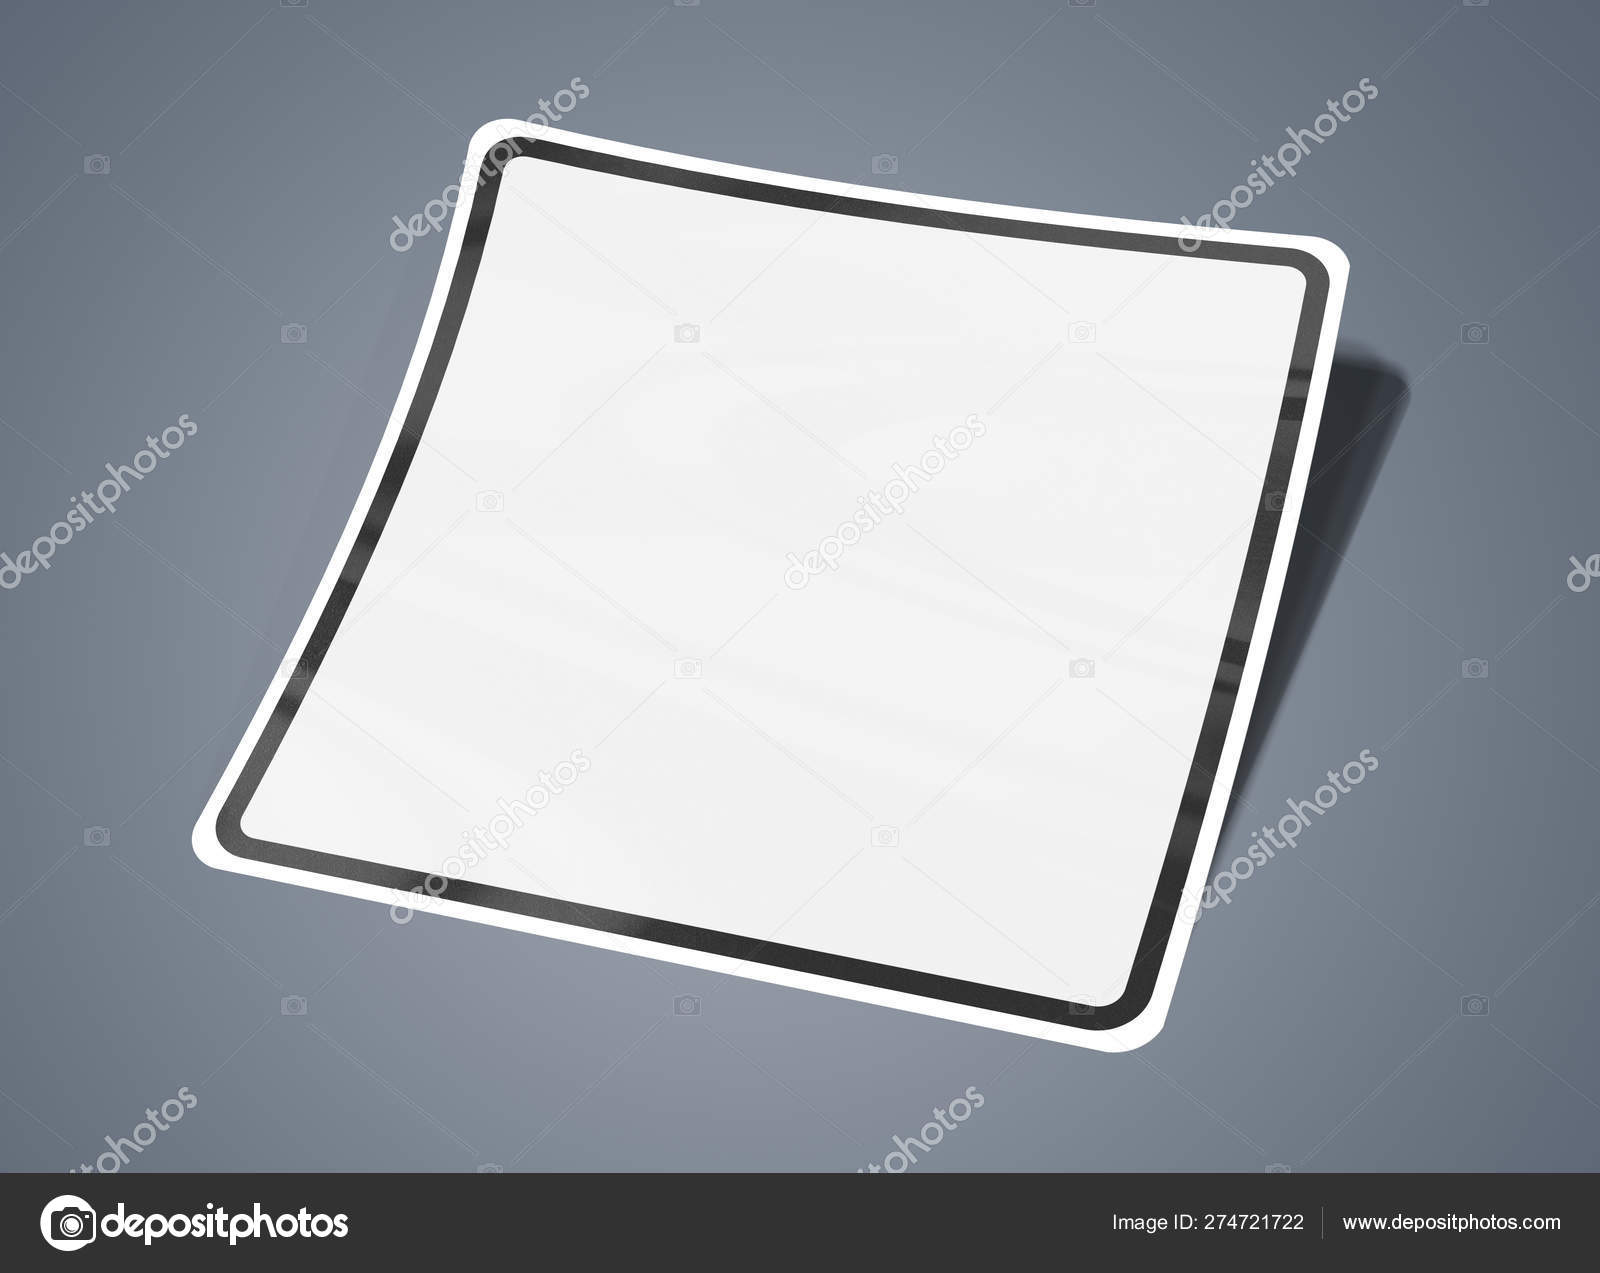 Squared shaped sticker mockup isolated on grey 3D rendering